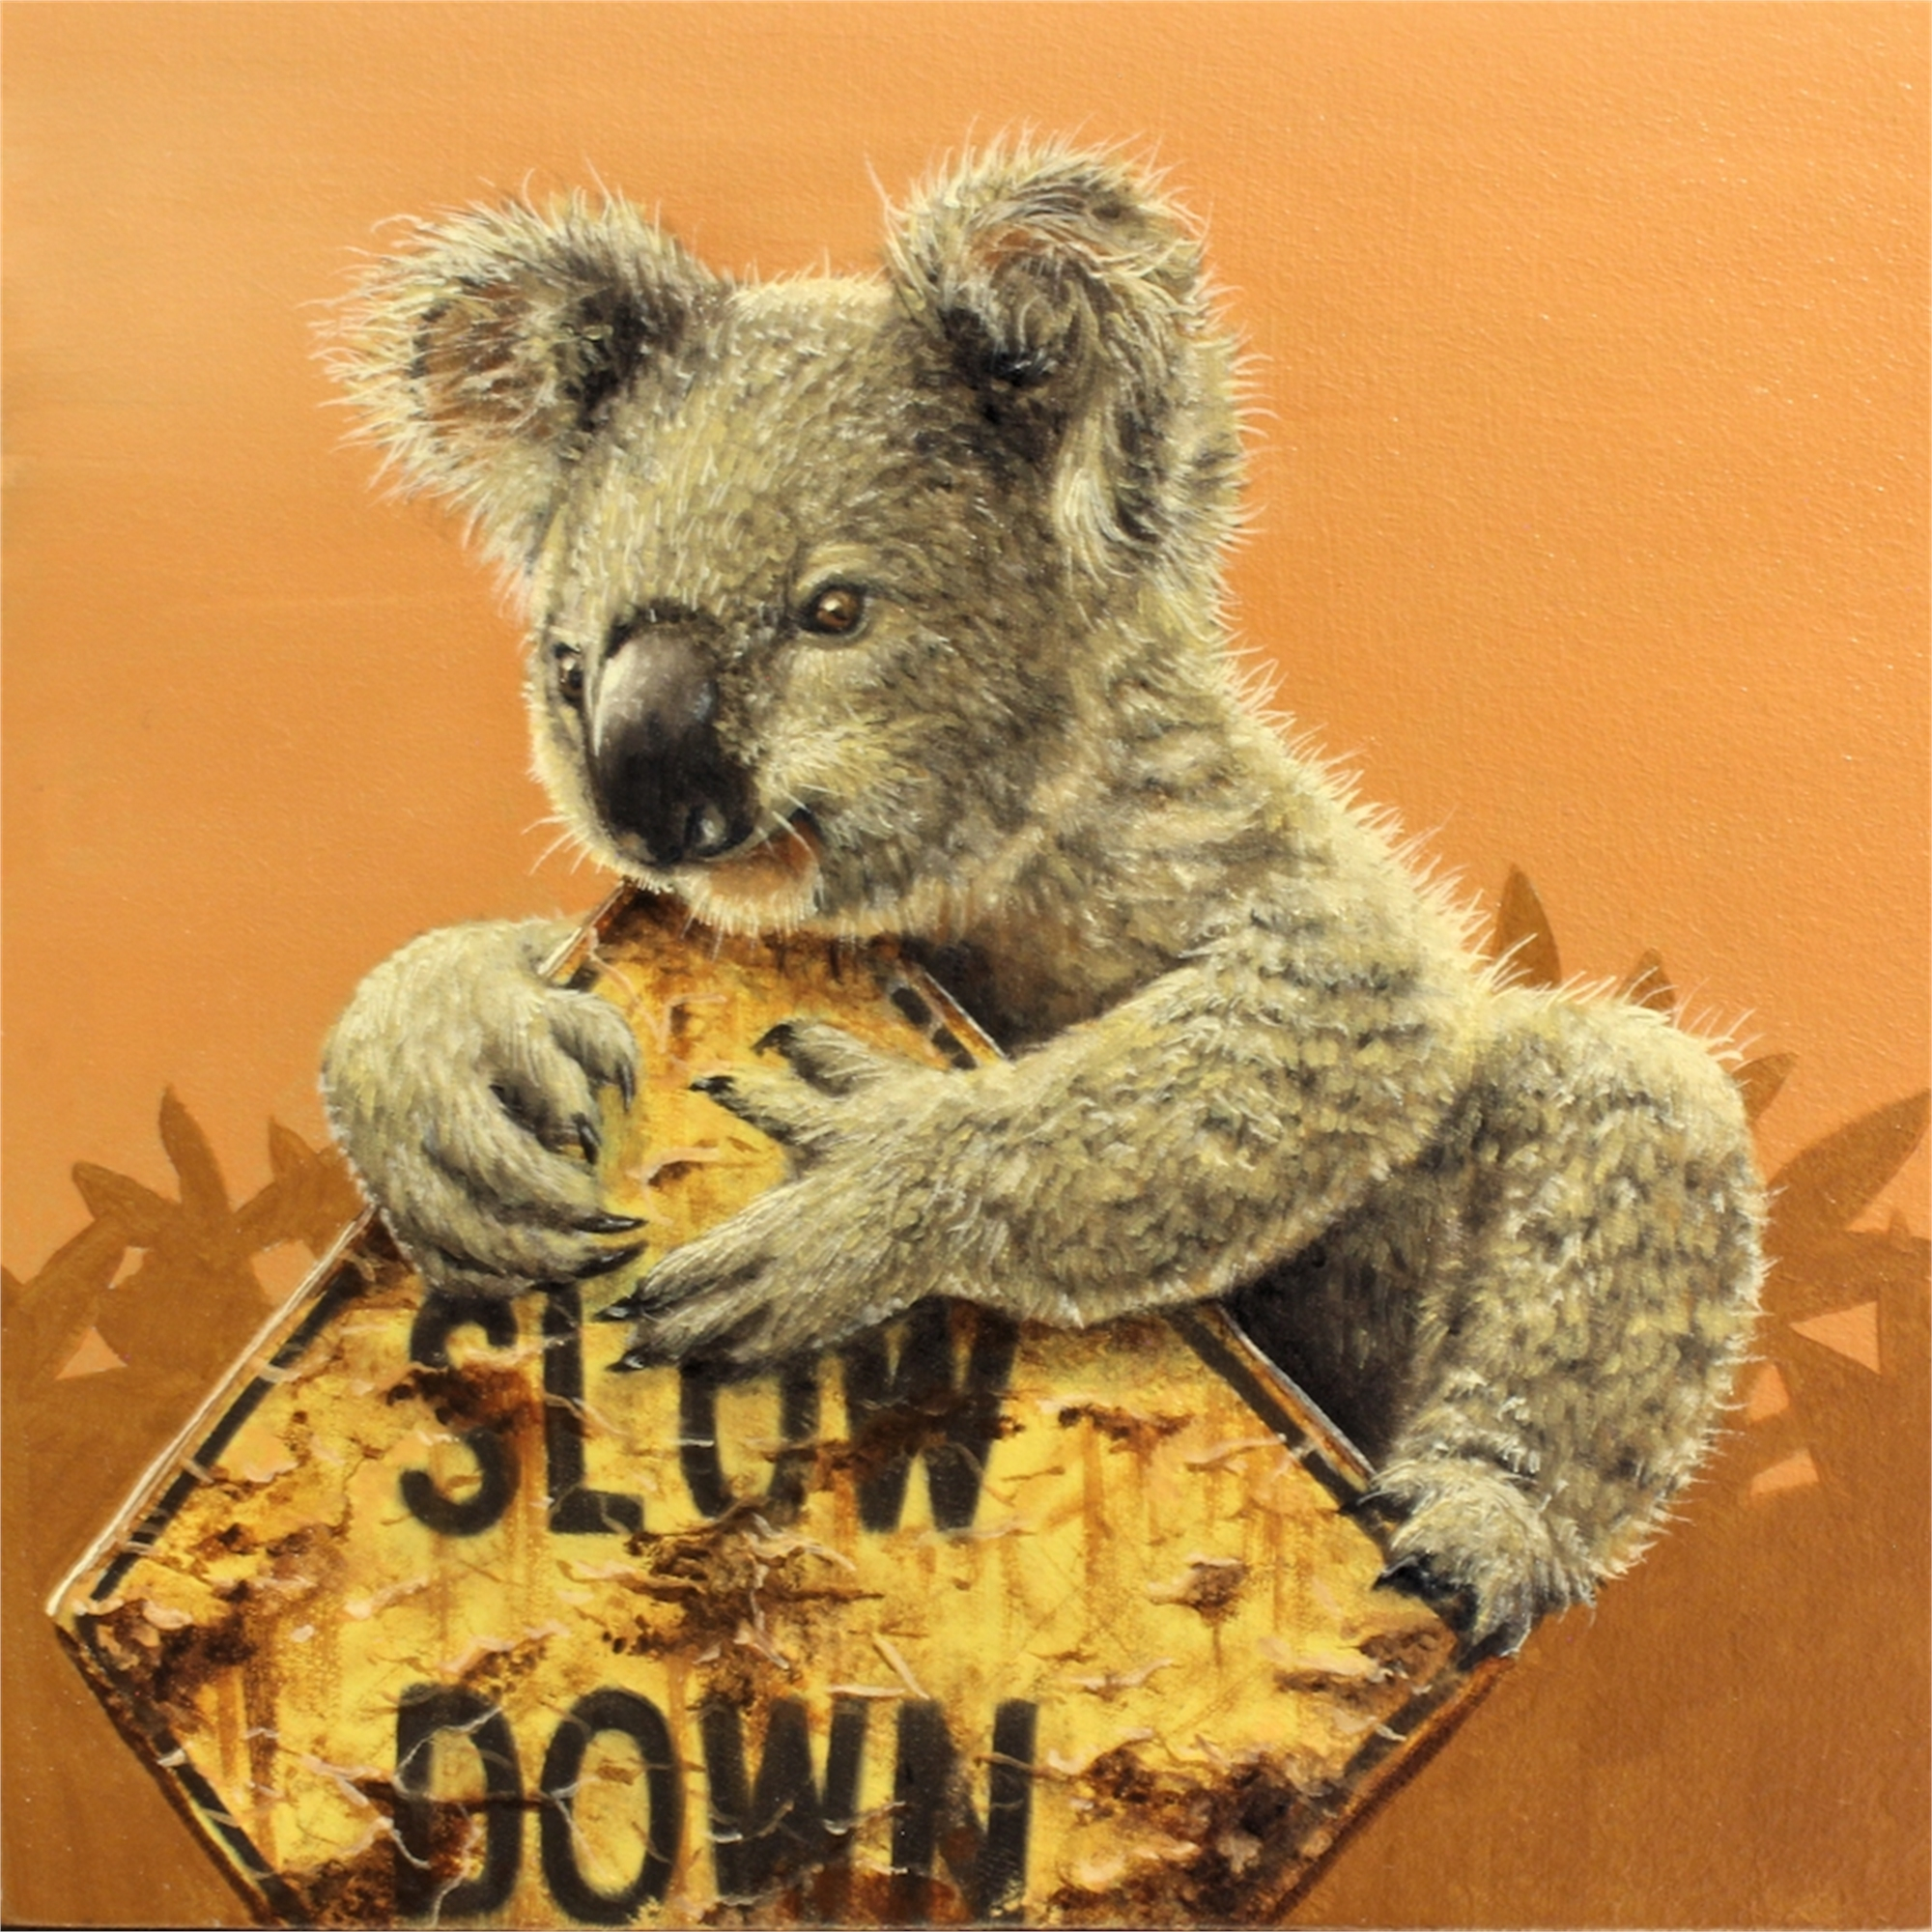 Slow Down by 3rd Version